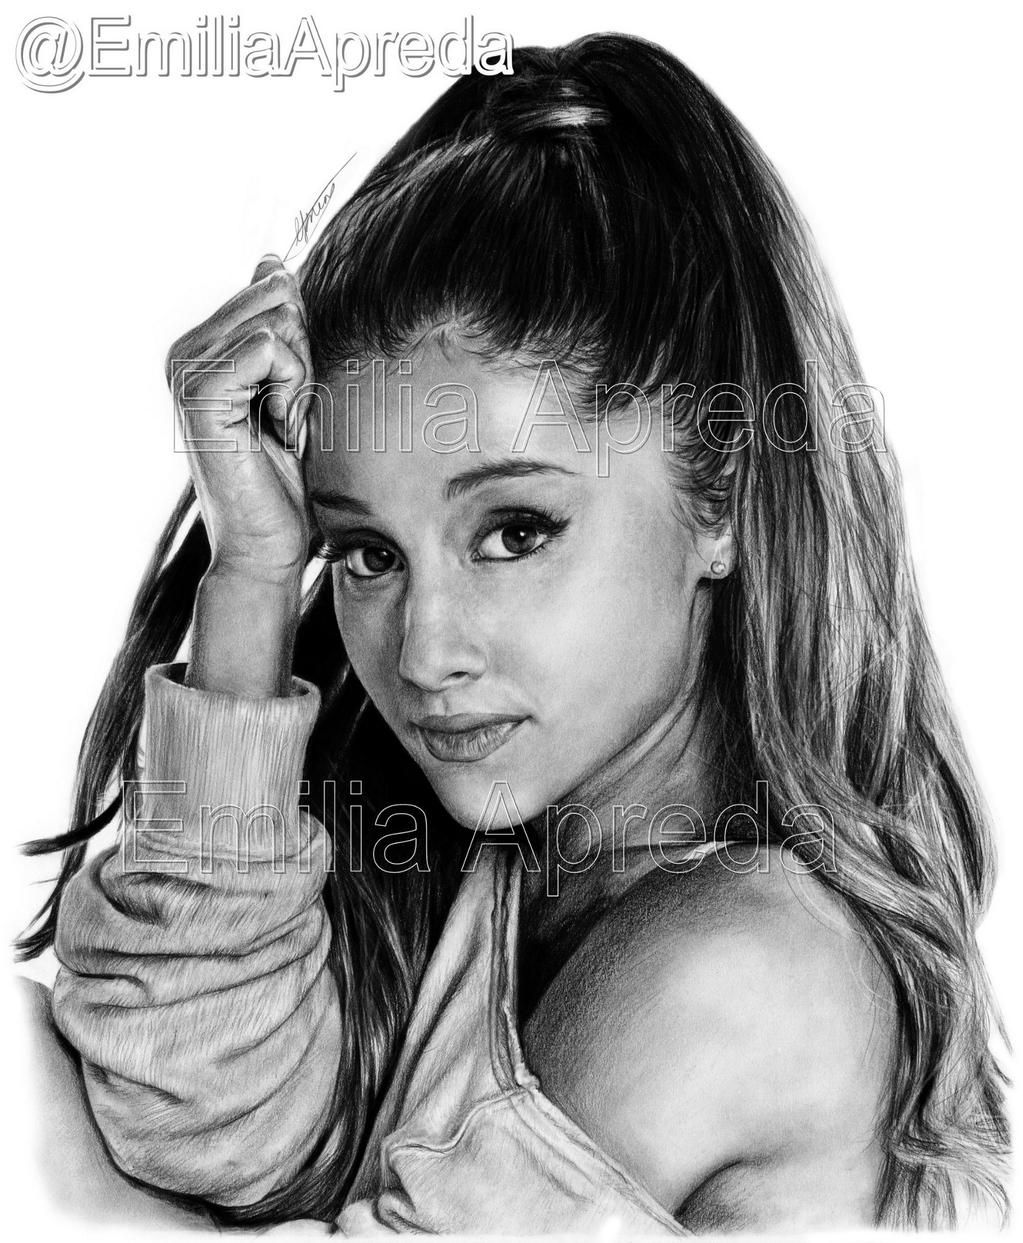 Artist emilia apreda on in 2019 ariana grande drawings